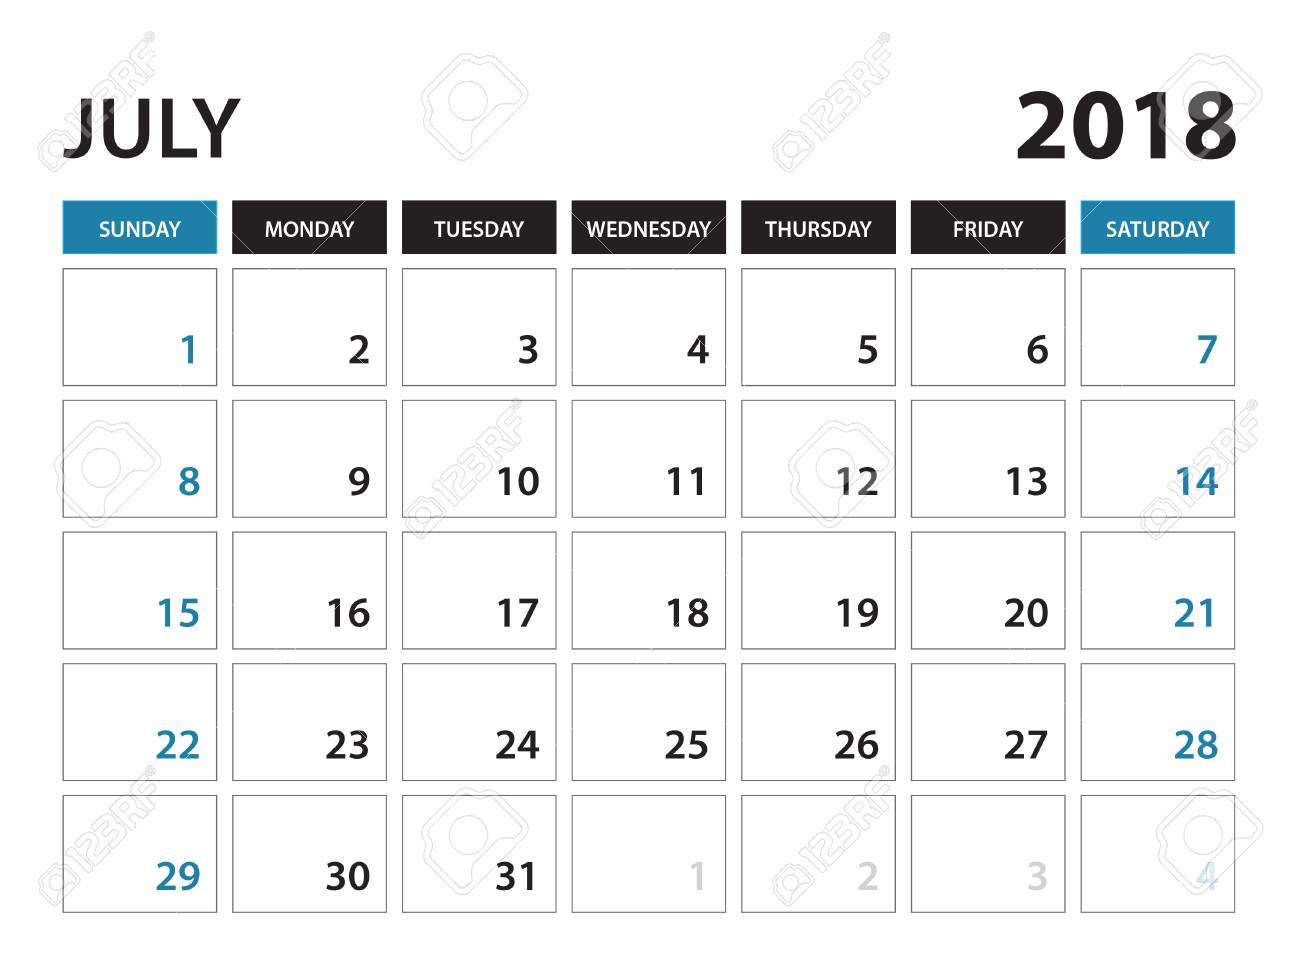 printable calendar for july 2018 planner design template week starts on sunday stationery